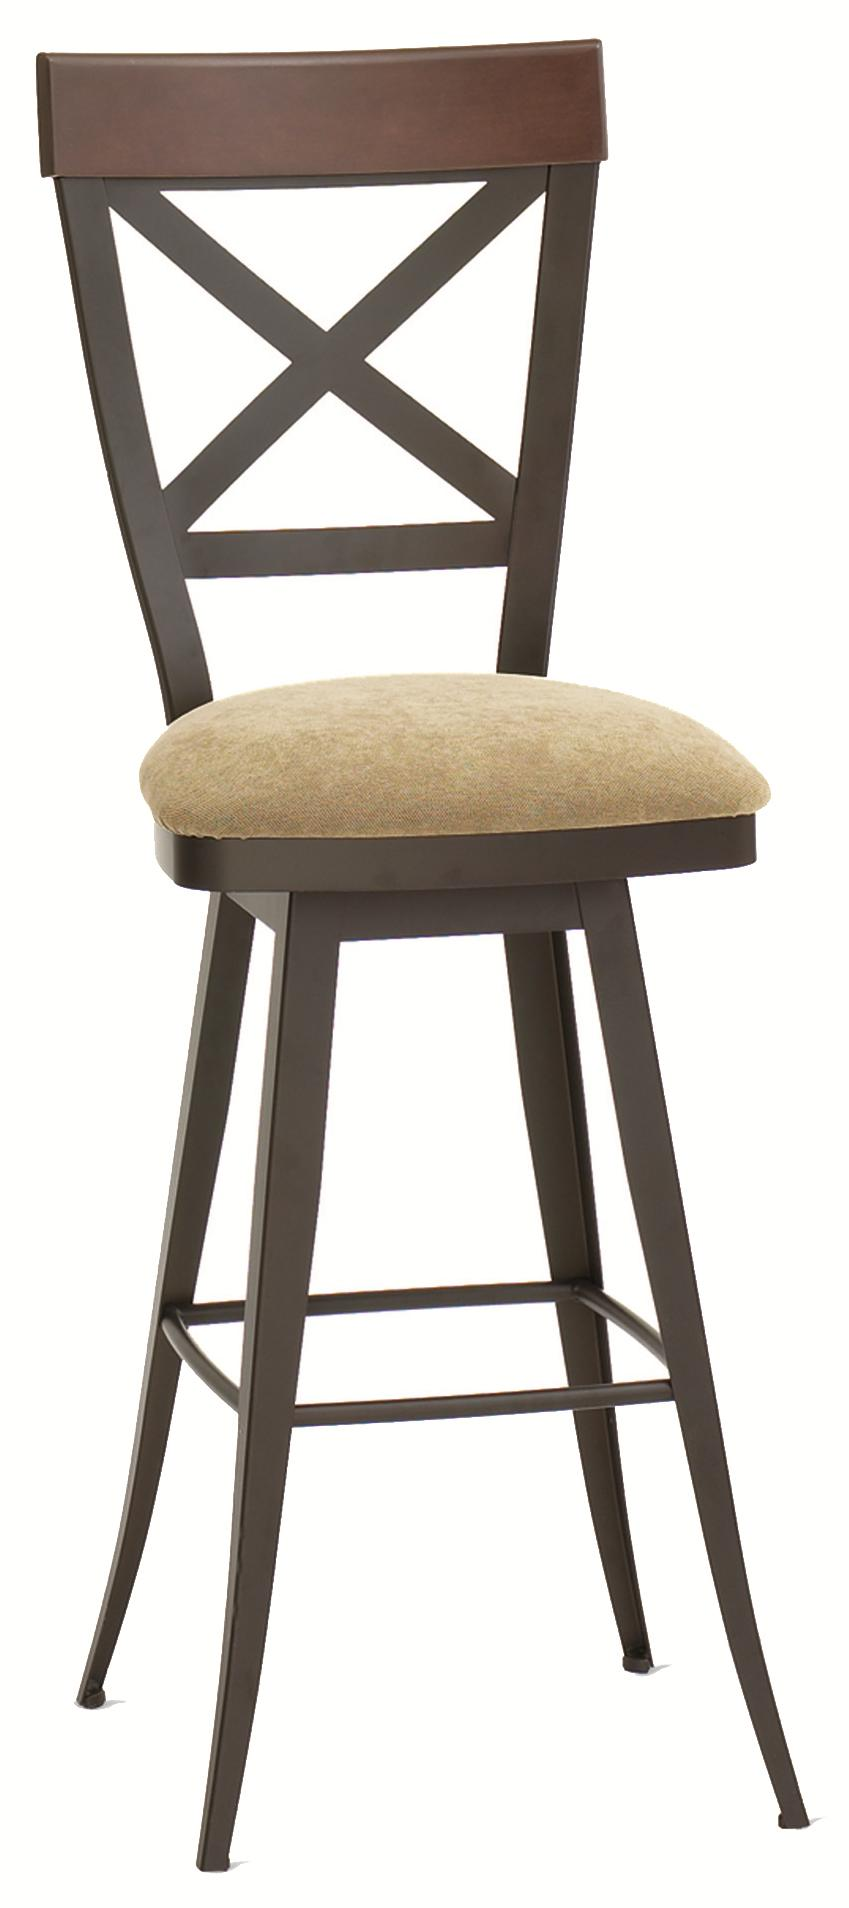 "Countryside 26"" Kyle Swivel Counter Stool  by Amisco at Saugerties Furniture Mart"